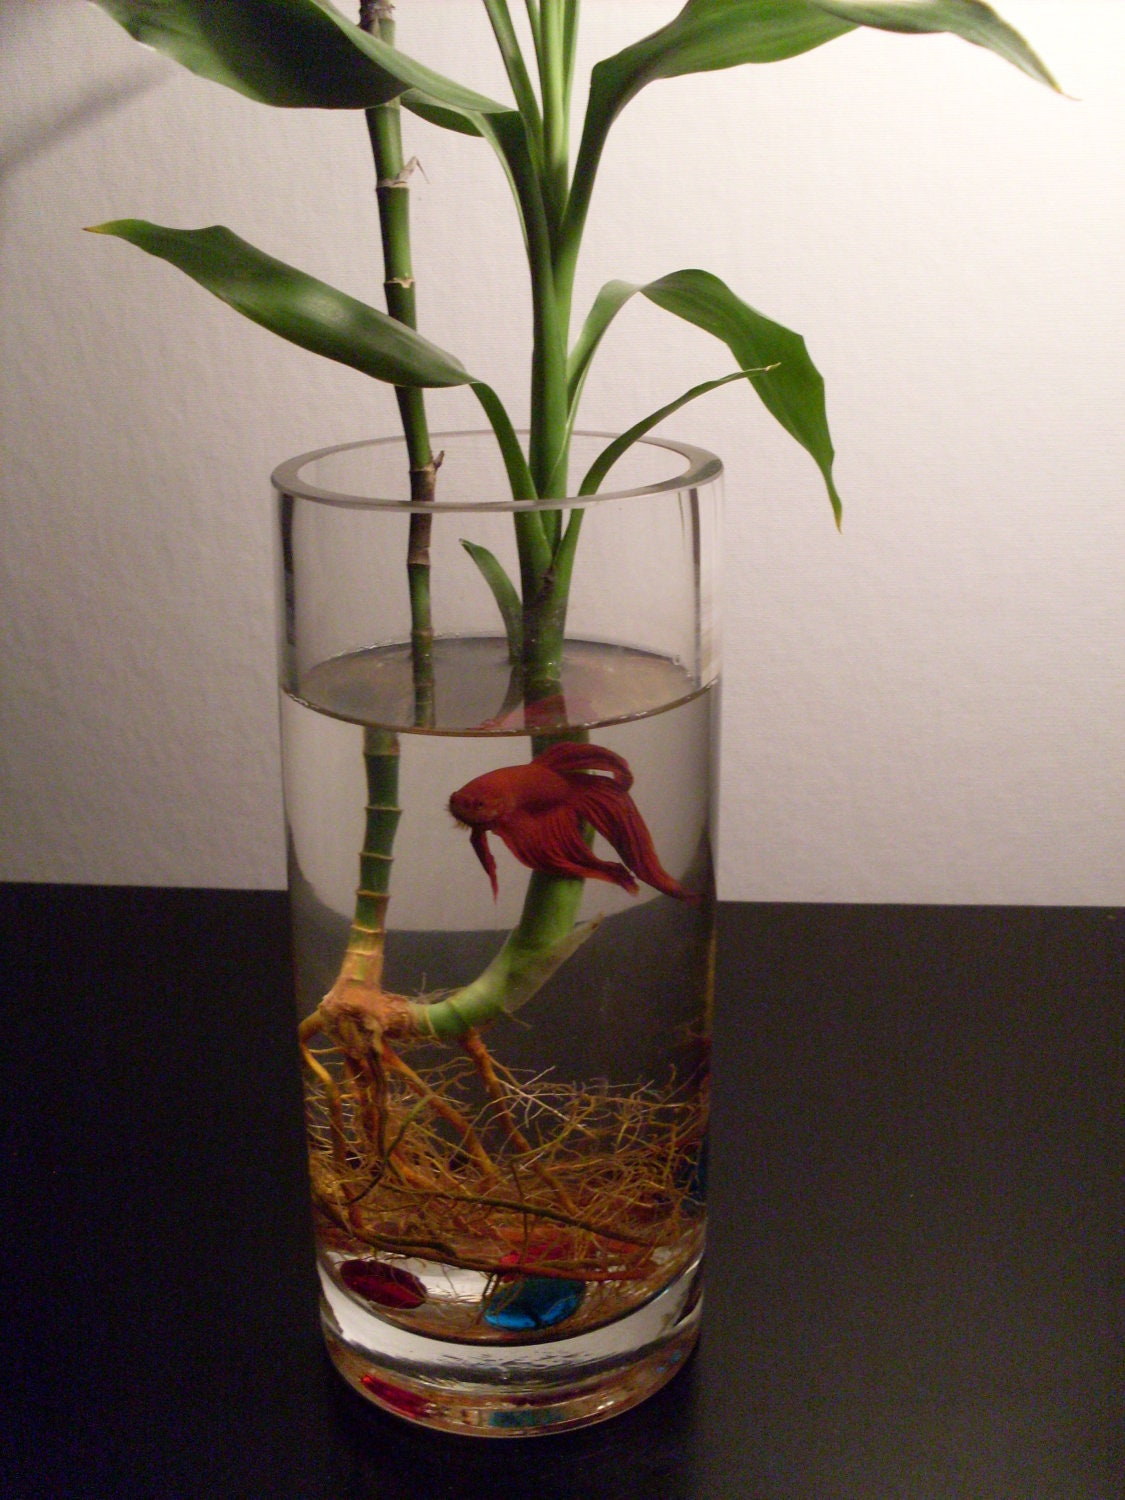 1000 Images About Beta Fish Bowls On Pinterest Betta Betta Fish Bowl And Betta Fish